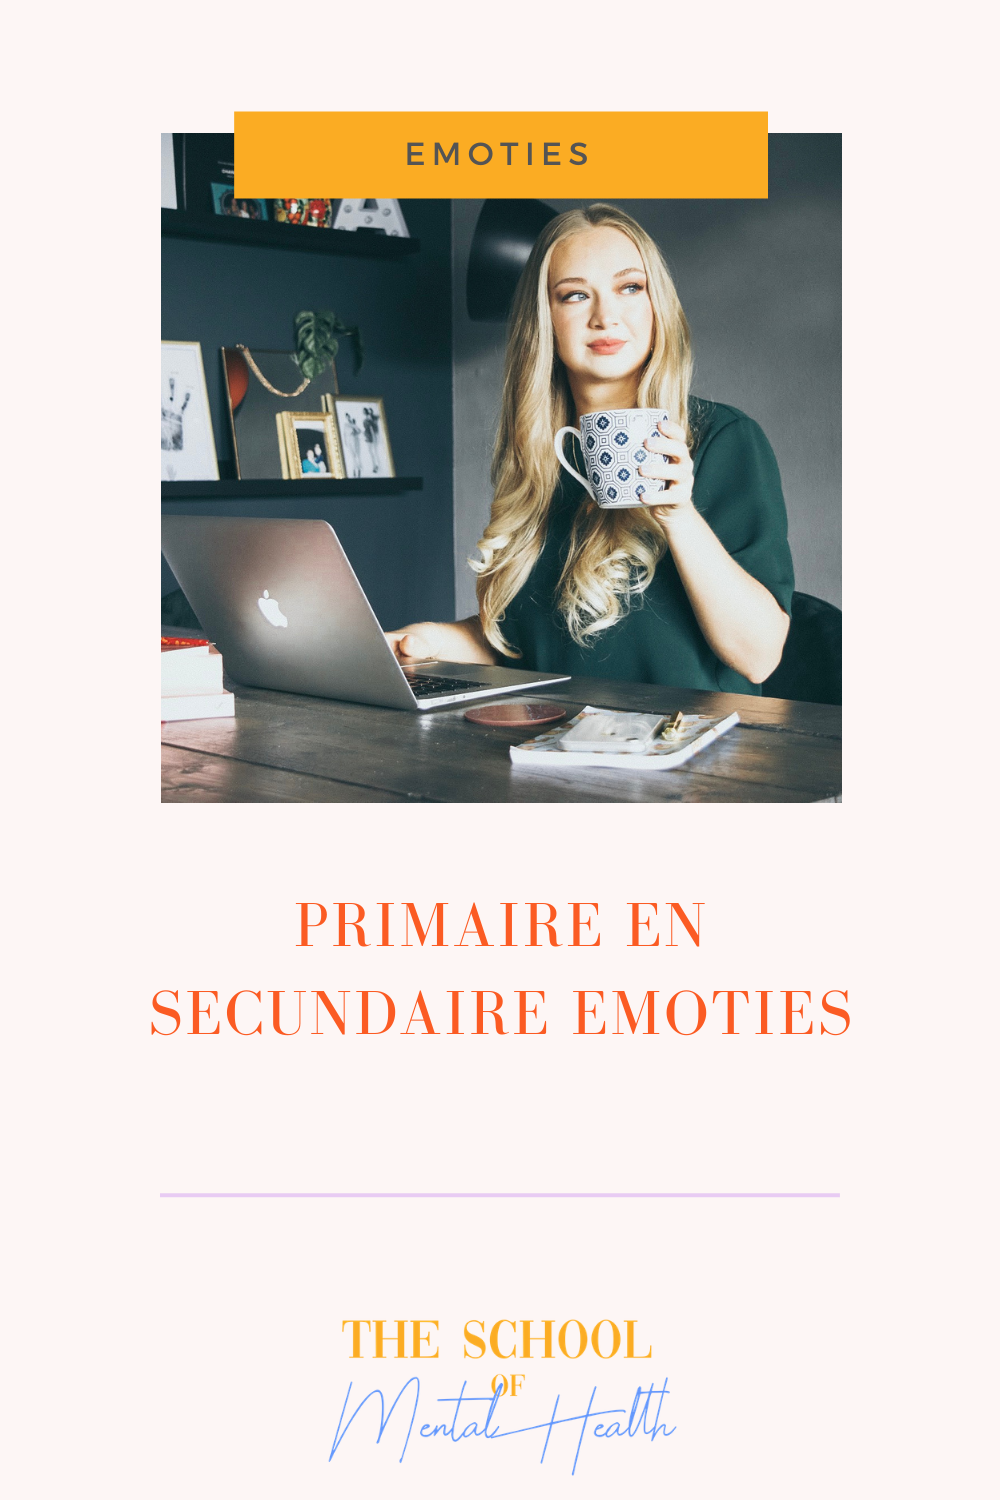 primaire-en-secundaire-emoties